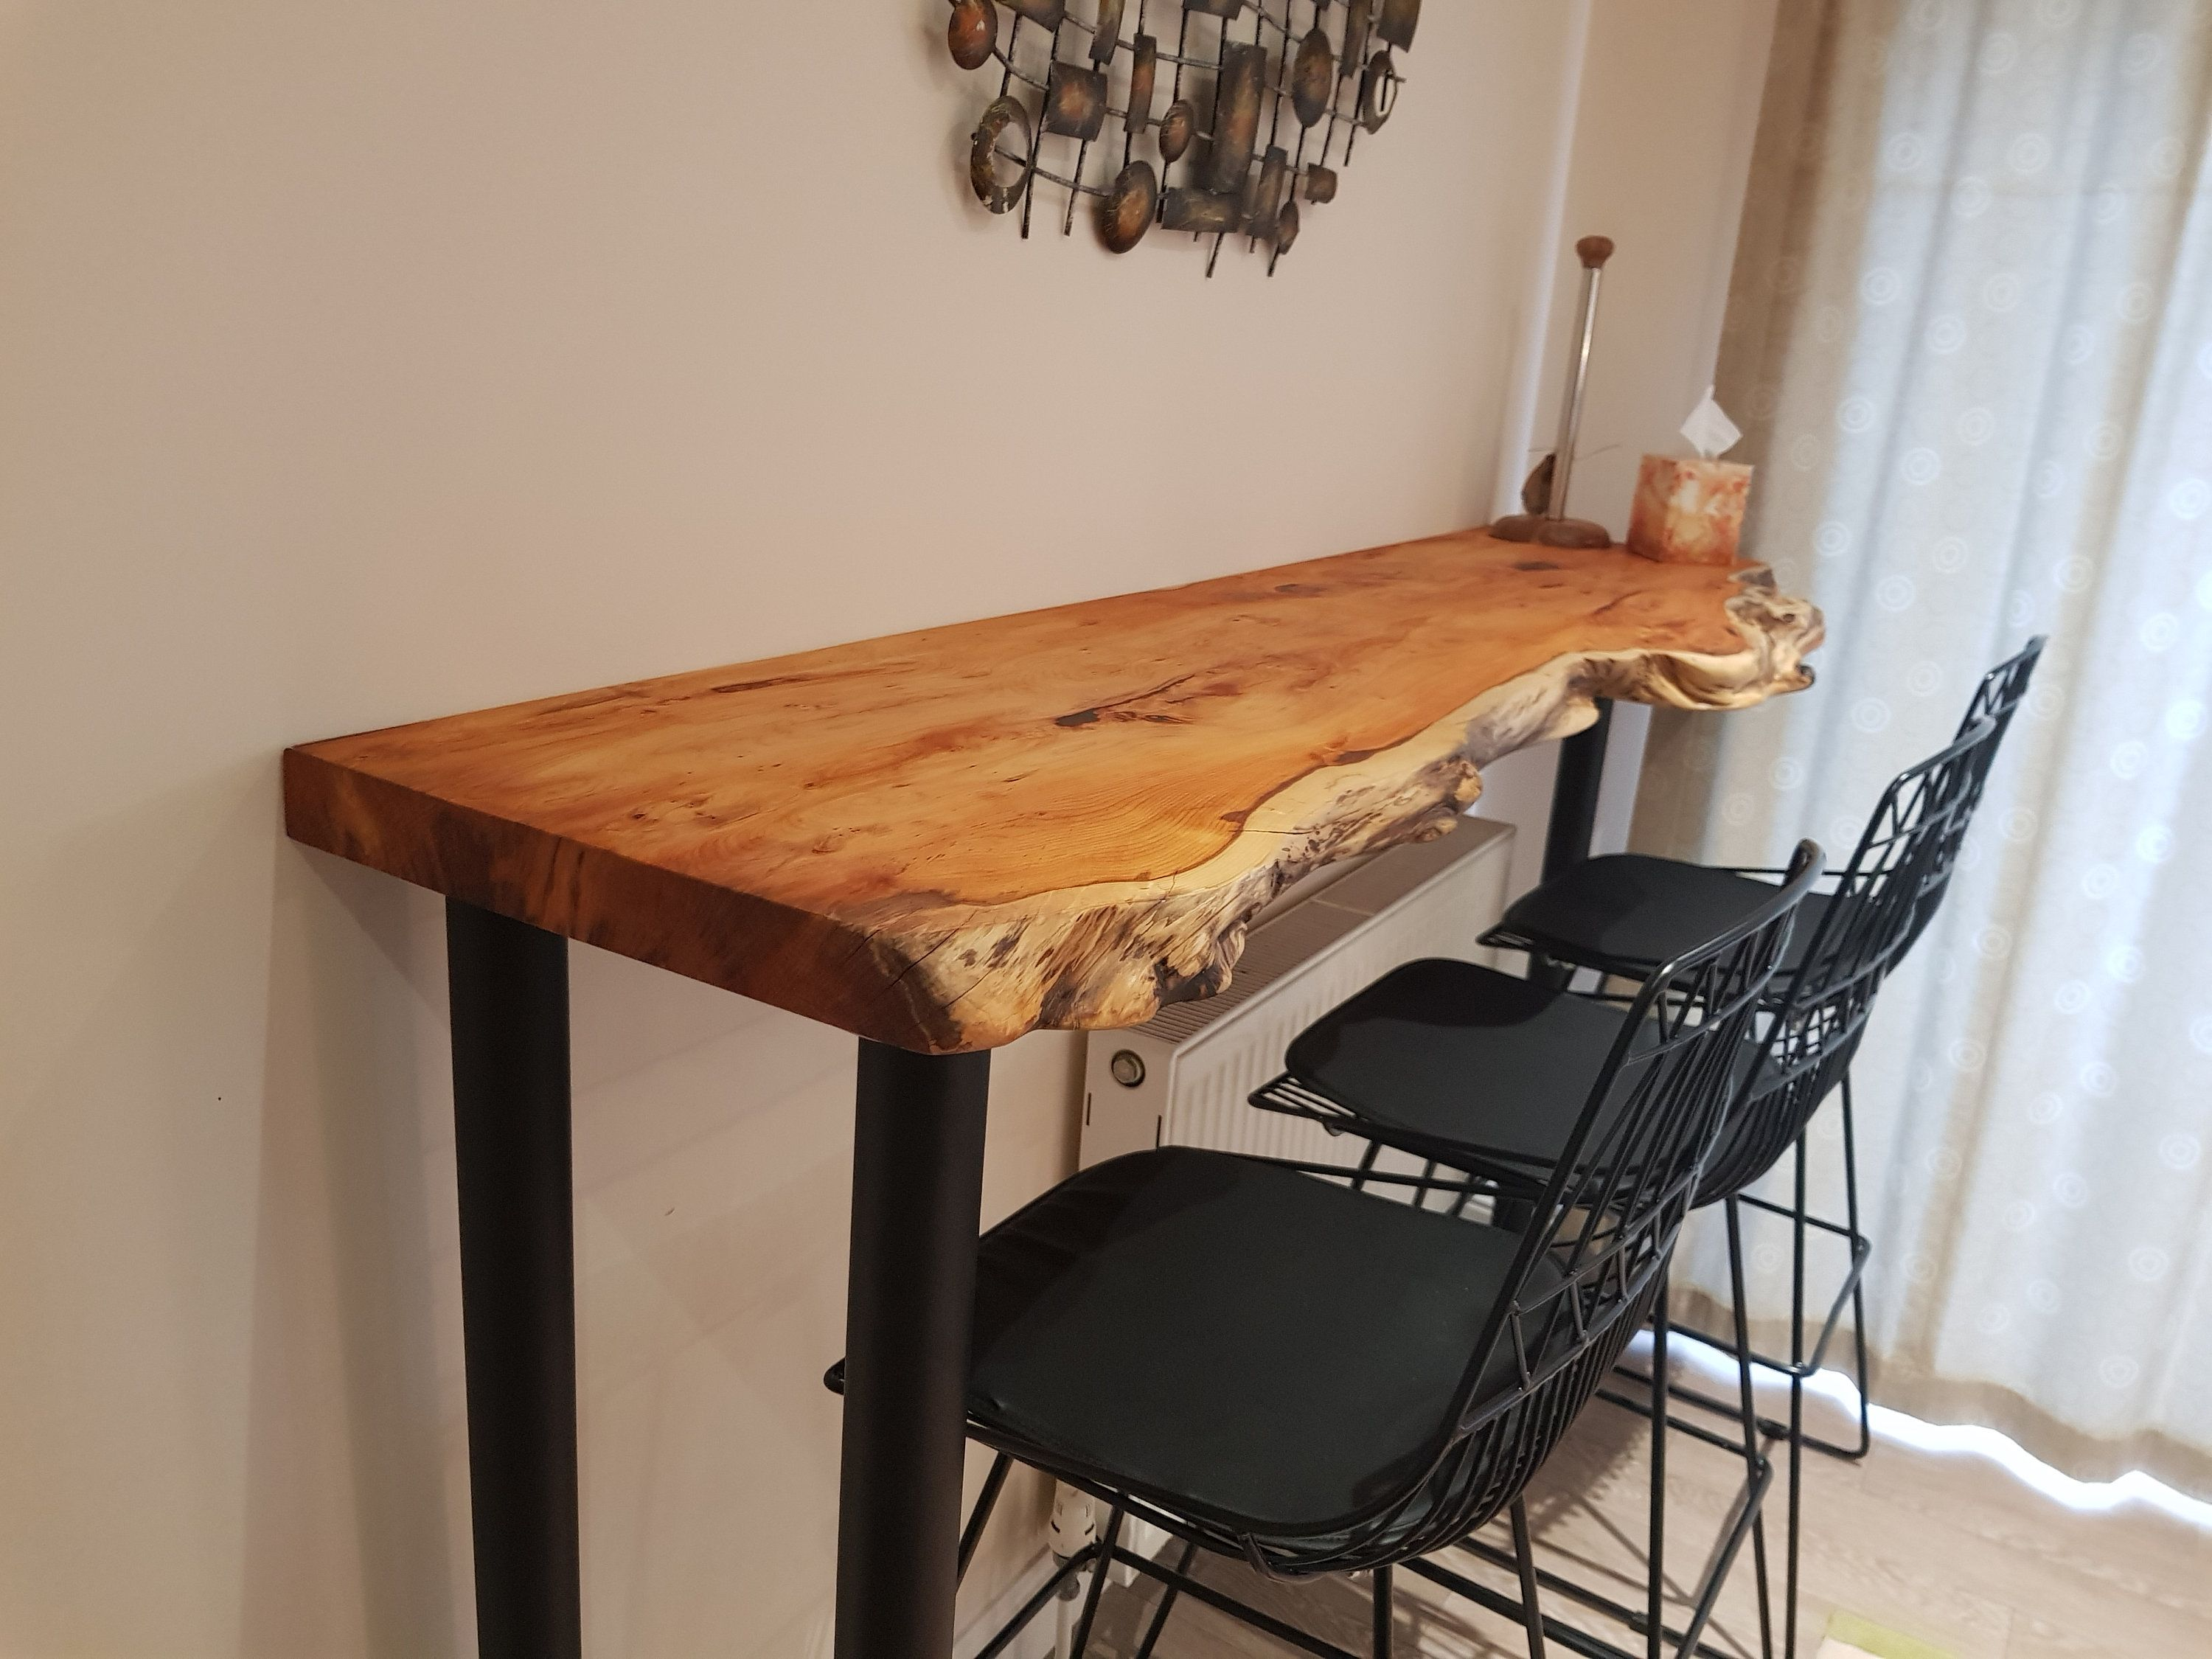 Live Edge Resin Breakfast Bar Countertop Shelf Console Table By Artfulshelves On Etsy In 2020 Countertops Console Table Modern Console Tables